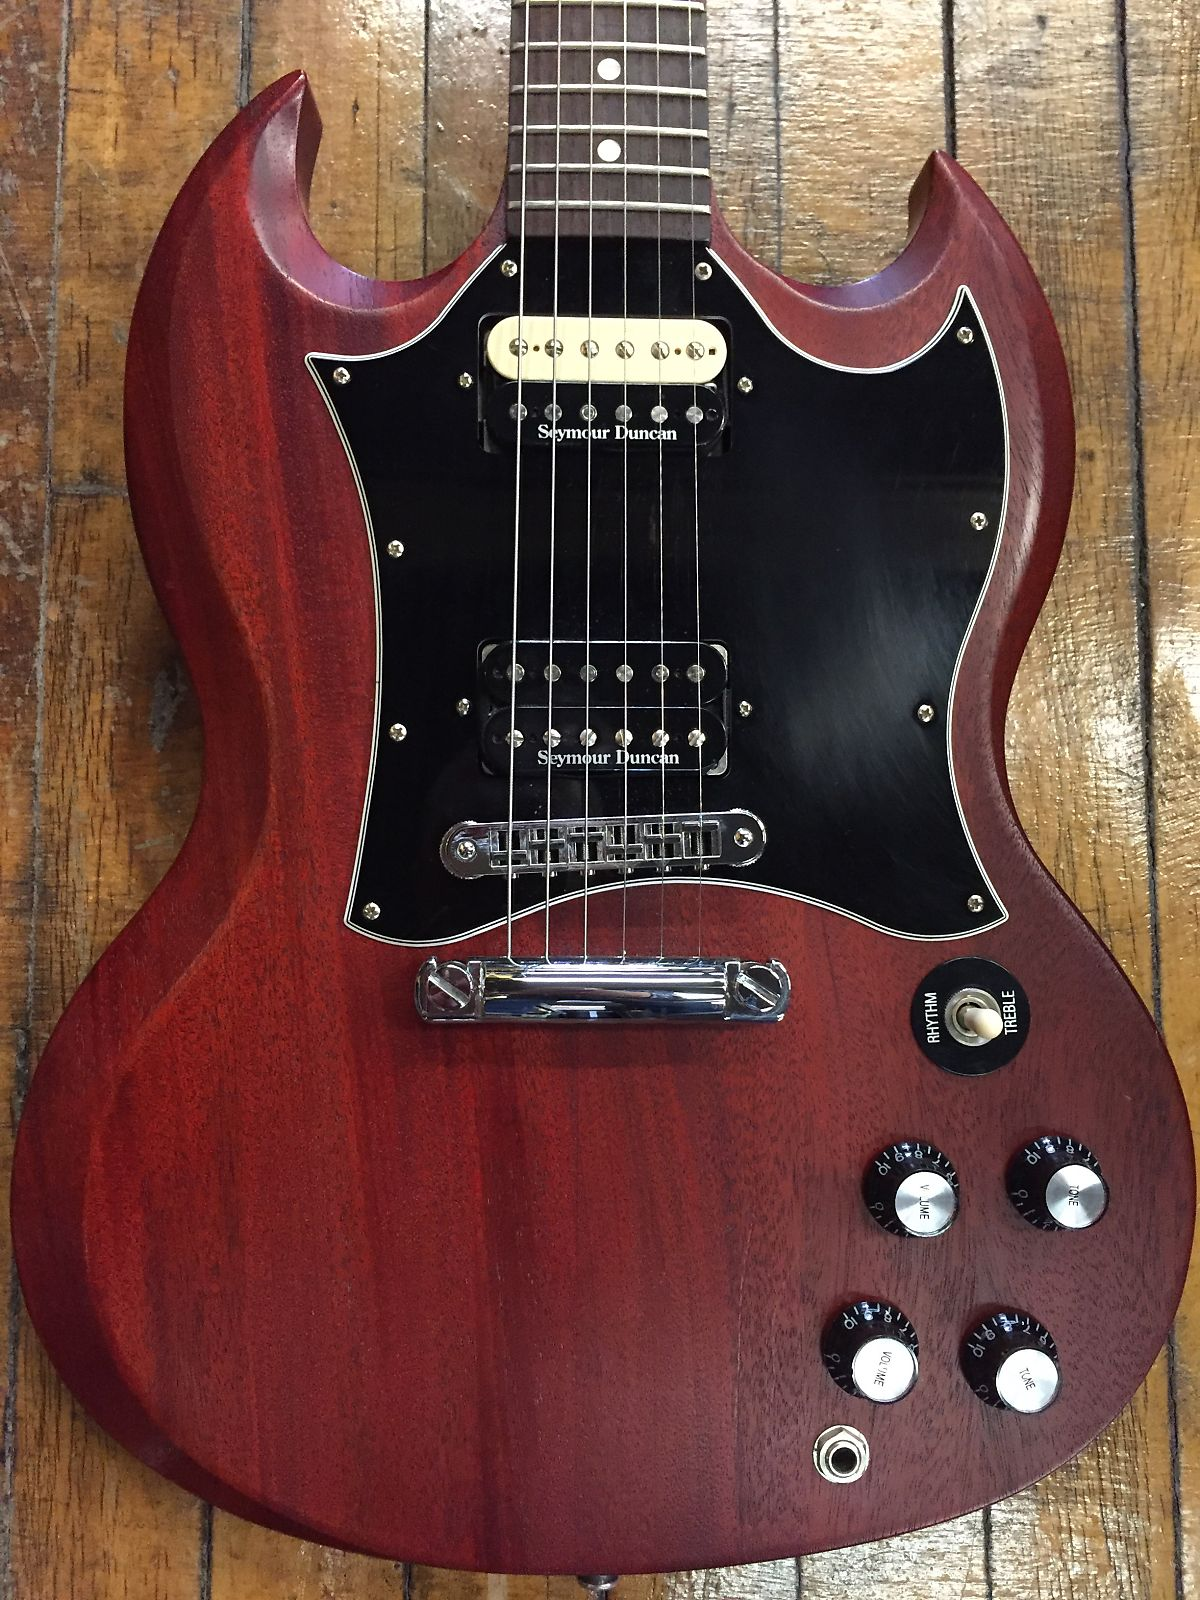 Gibson SG Special w/ Seymour Duncan Pearly Gates Pickups 2007 Worn Cherry